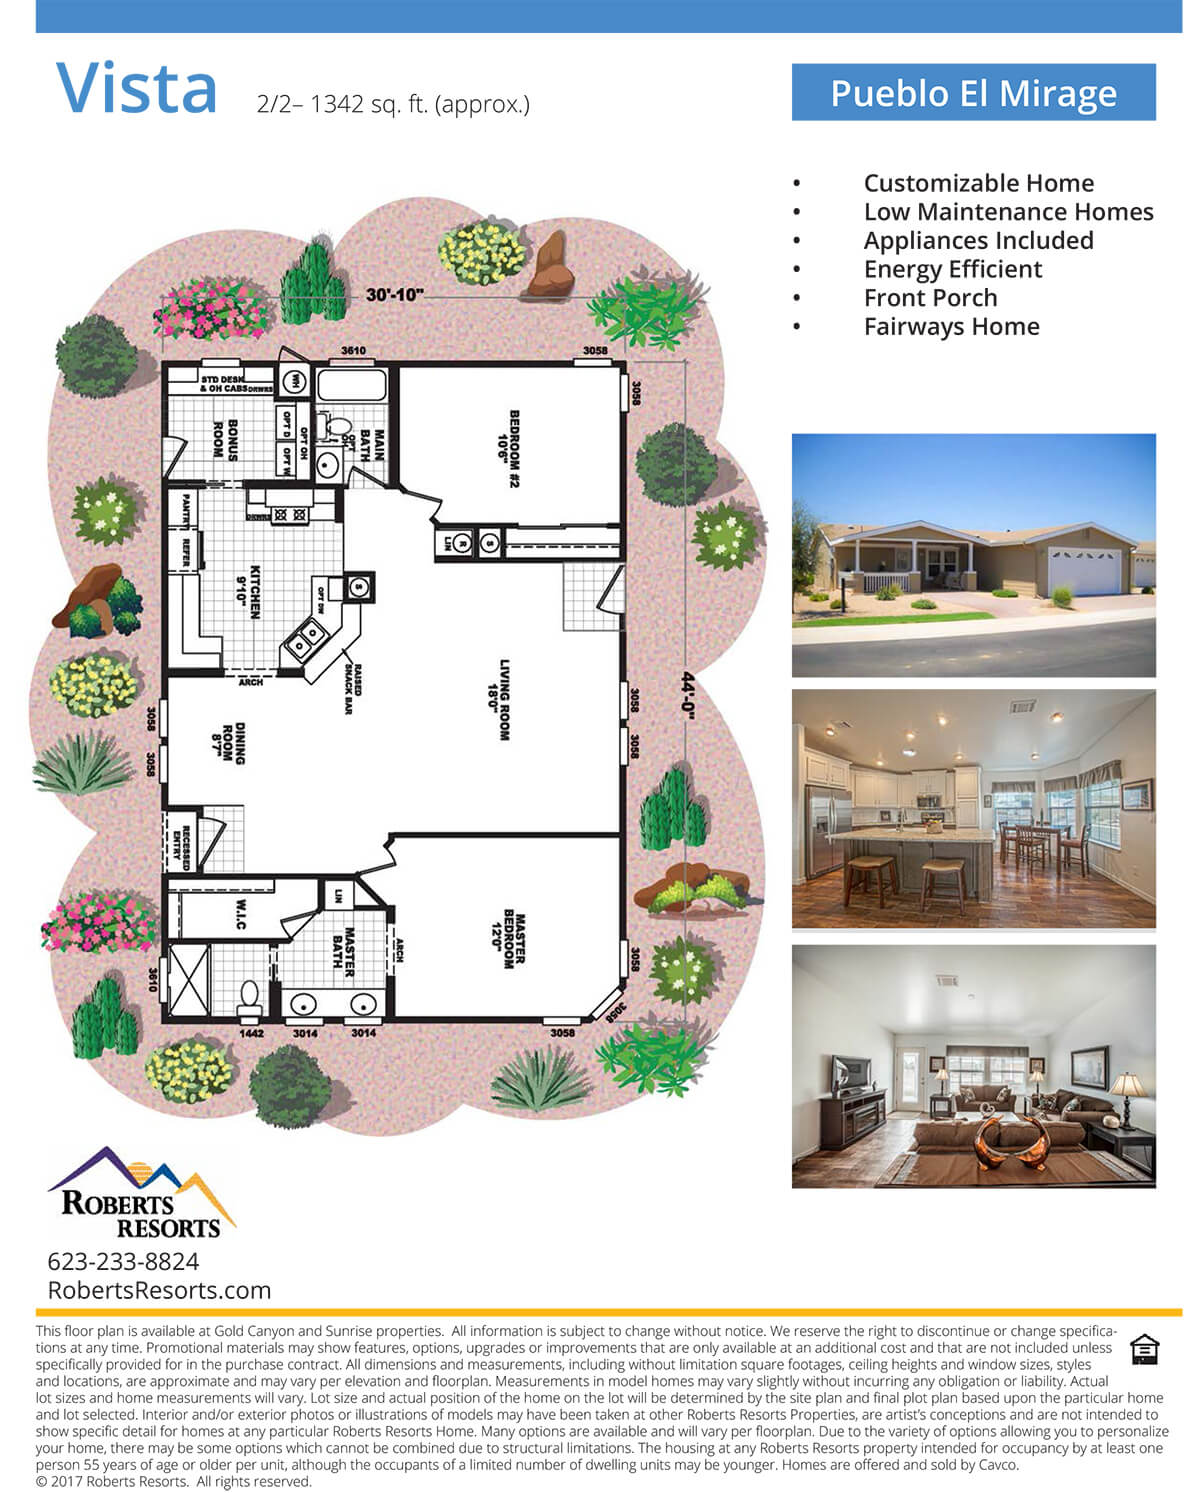 Pueblo El Mirage - Model Home - Vista